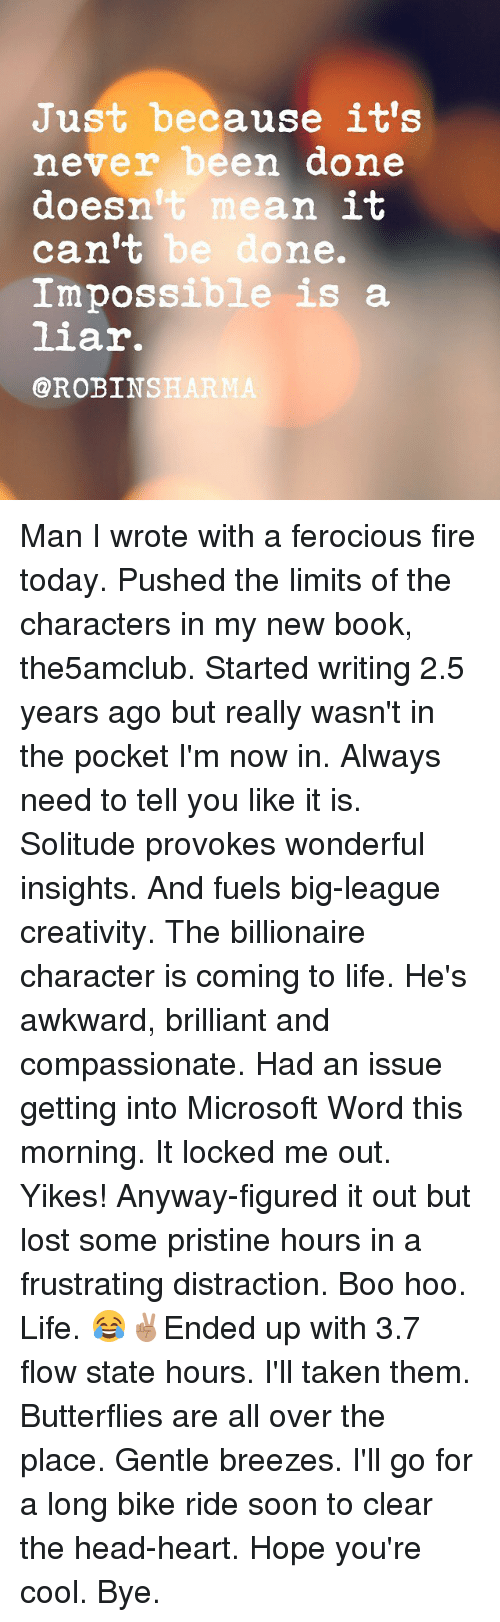 Ferocious: Just because it's  never been done  doesn't mean it  can't be done.  Impossible is a  liar.  @ROBINSHARM Man I wrote with a ferocious fire today. Pushed the limits of the characters in my new book, the5amclub. Started writing 2.5 years ago but really wasn't in the pocket I'm now in. Always need to tell you like it is. Solitude provokes wonderful insights. And fuels big-league creativity. The billionaire character is coming to life. He's awkward, brilliant and compassionate. Had an issue getting into Microsoft Word this morning. It locked me out. Yikes! Anyway-figured it out but lost some pristine hours in a frustrating distraction. Boo hoo. Life. 😂✌🏽Ended up with 3.7 flow state hours. I'll taken them. Butterflies are all over the place. Gentle breezes. I'll go for a long bike ride soon to clear the head-heart. Hope you're cool. Bye.